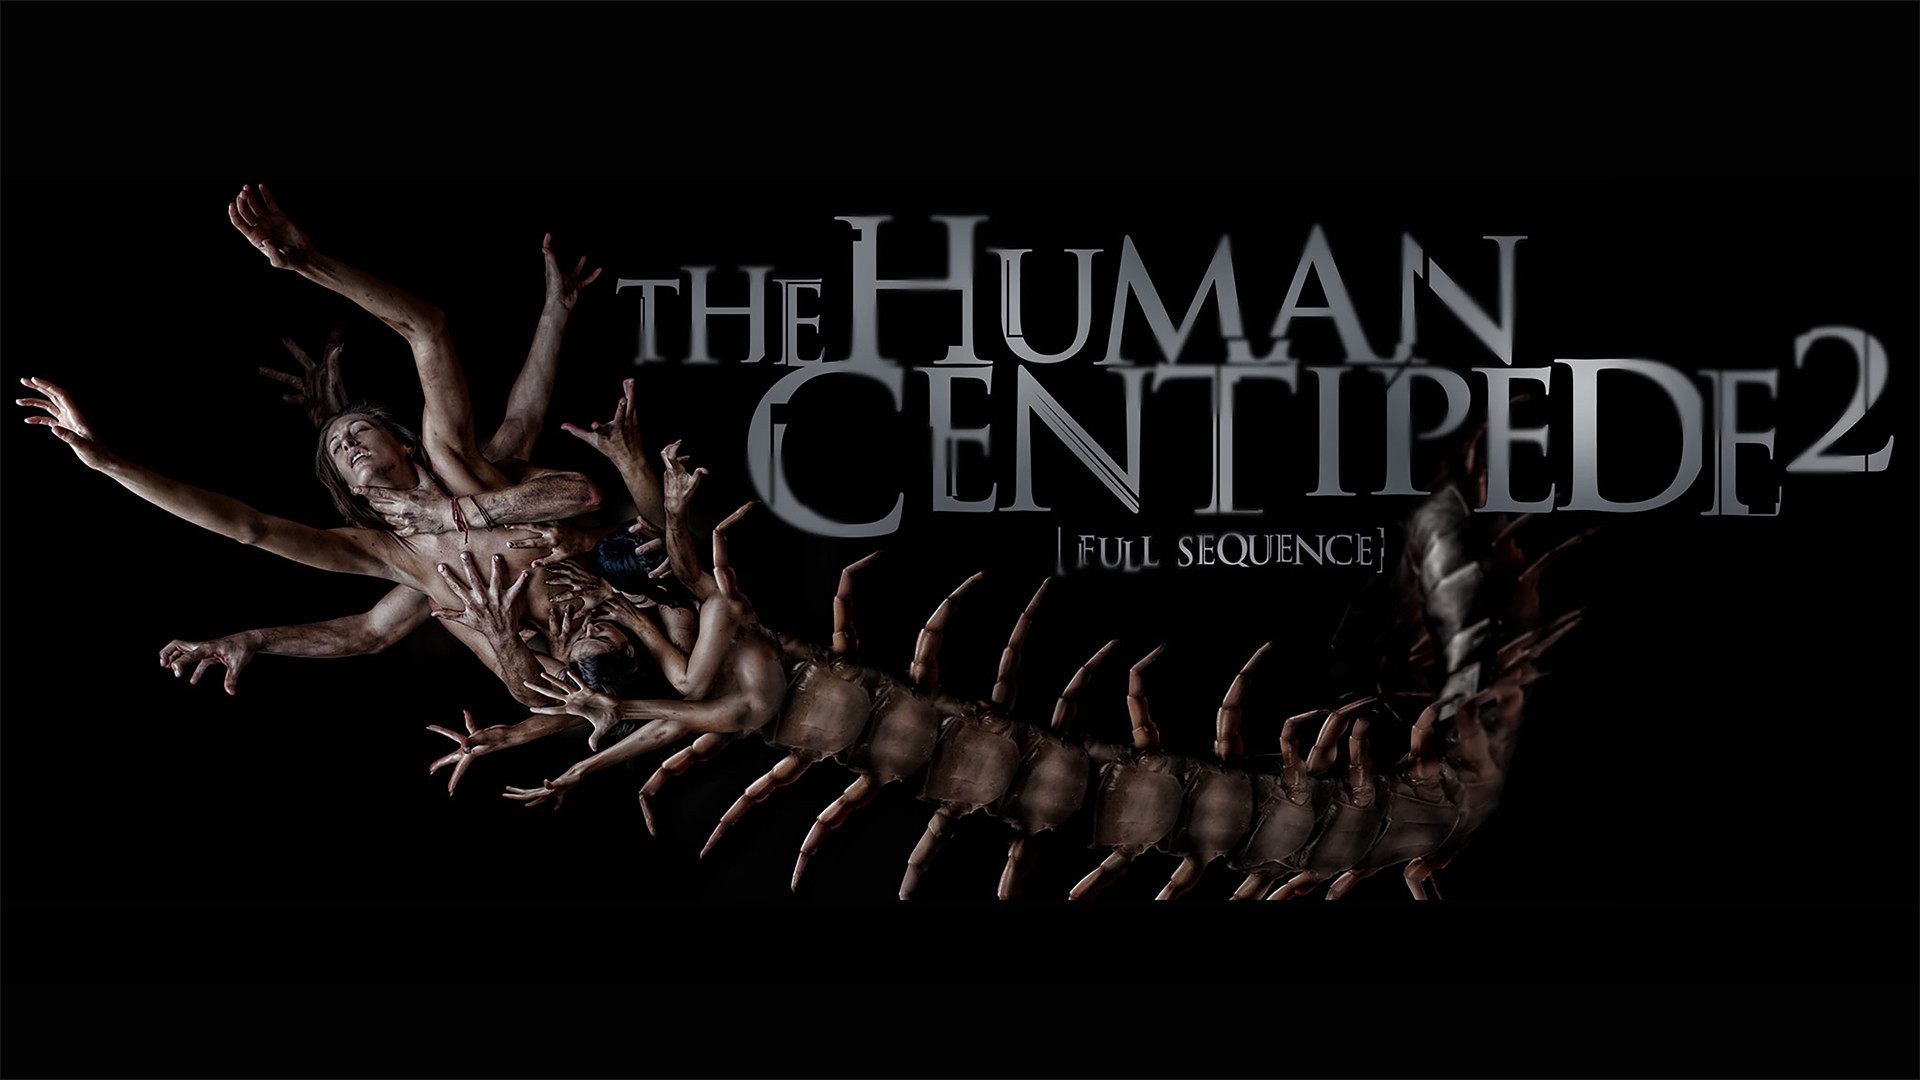 The Human Centipede II, Full Sequence